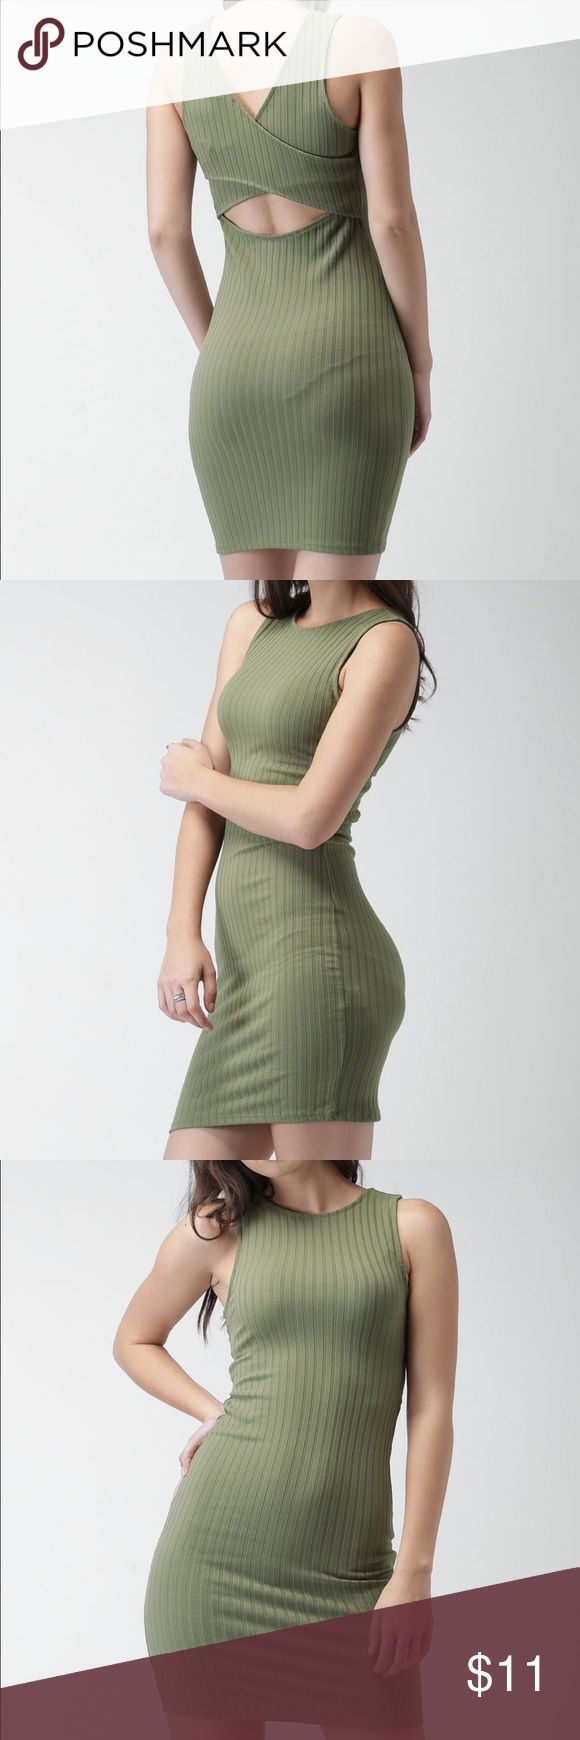 F21 Olive Green Self Striped Bodycon Dress Size: small. Tried on, but never worn. Forever 21 Dresses Mini